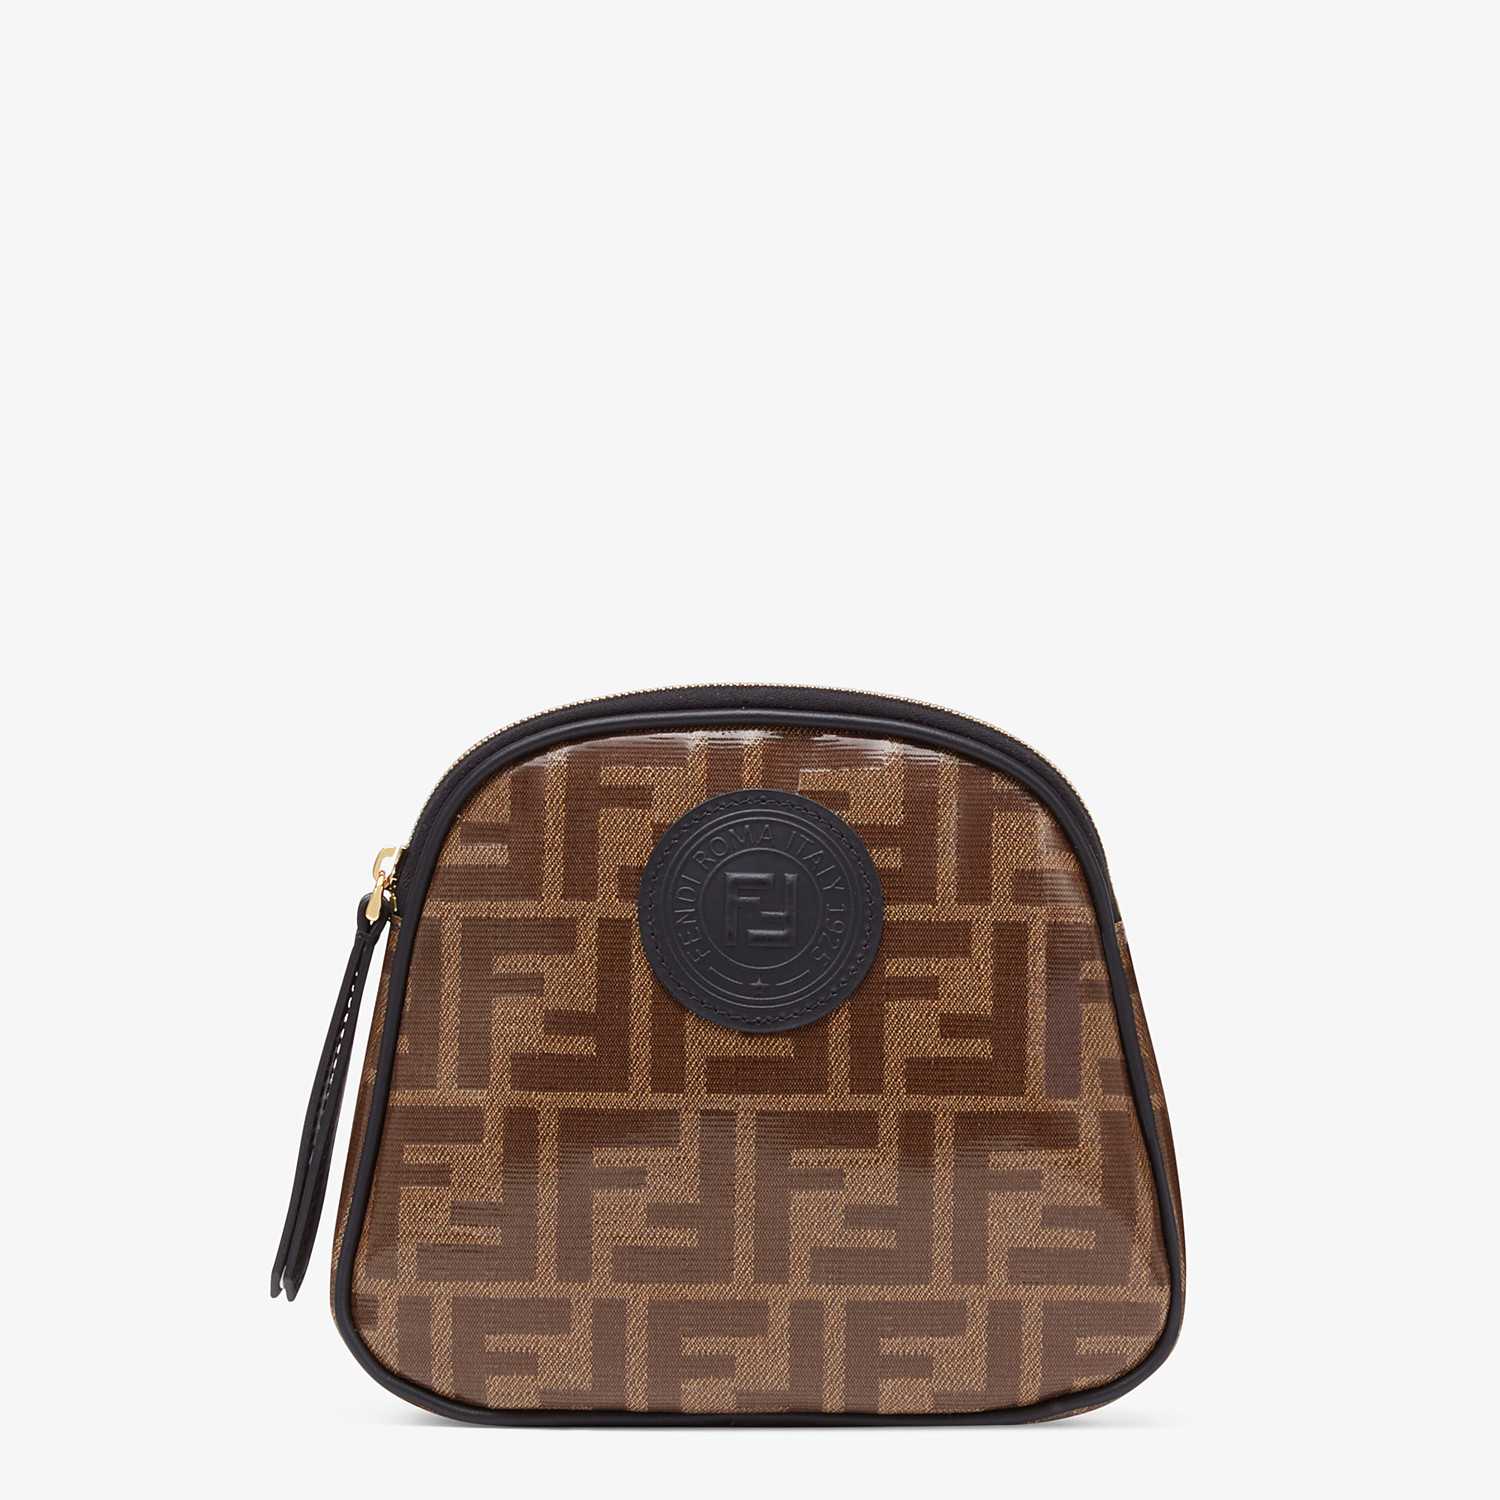 FENDI TOILETRY CASE MEDIUM - Brown fabric toiletry case - view 1 detail